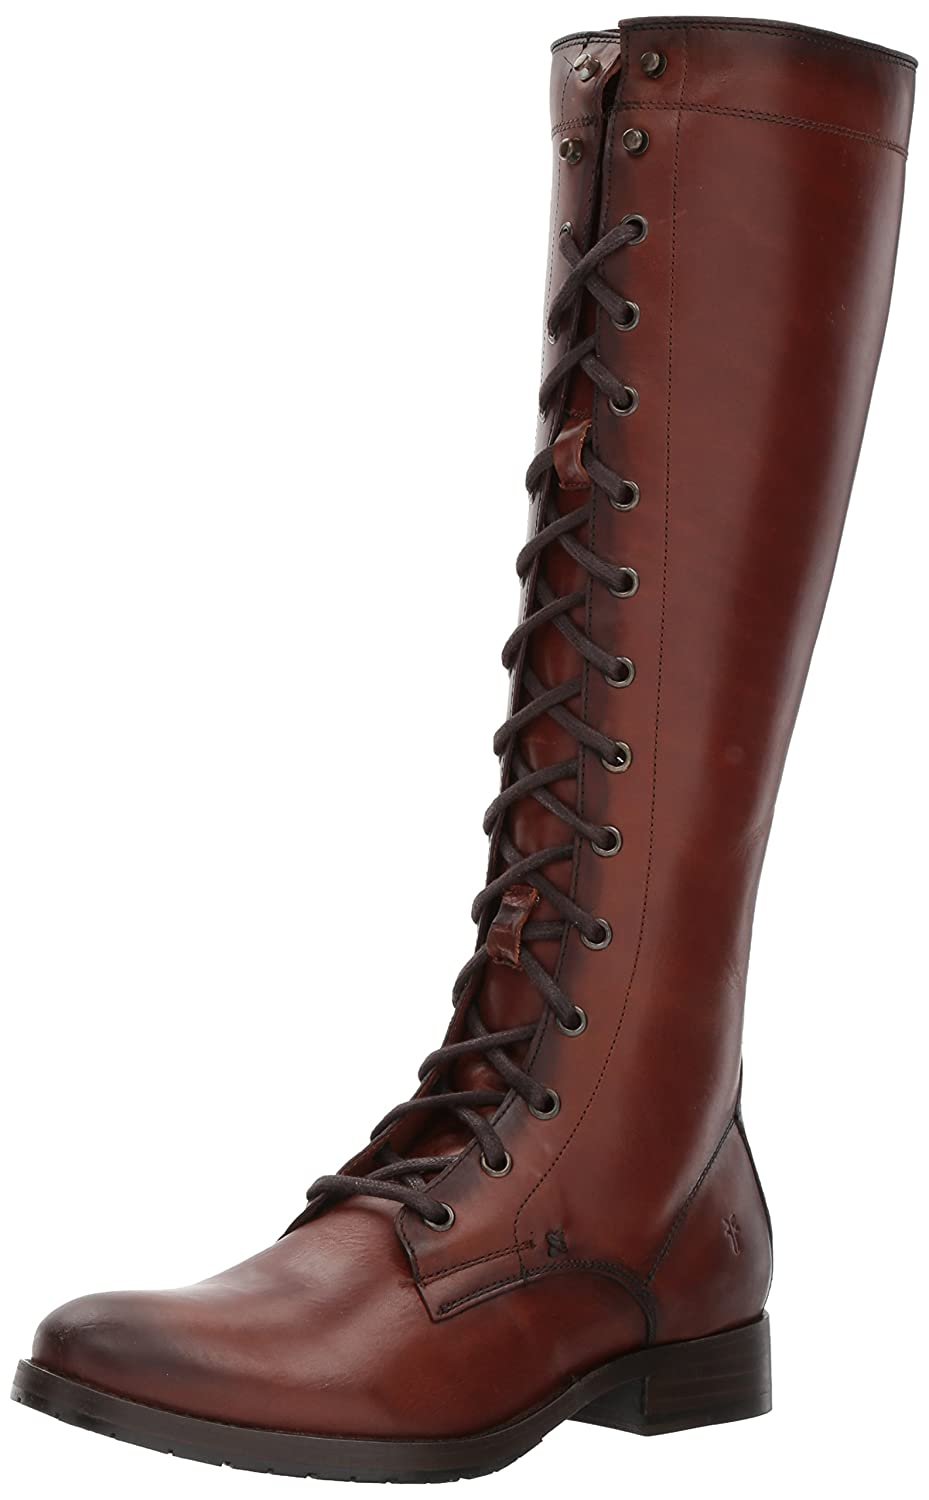 14d1f4f62a8 Frye Womens Melissa Tall Lace Riding Boot